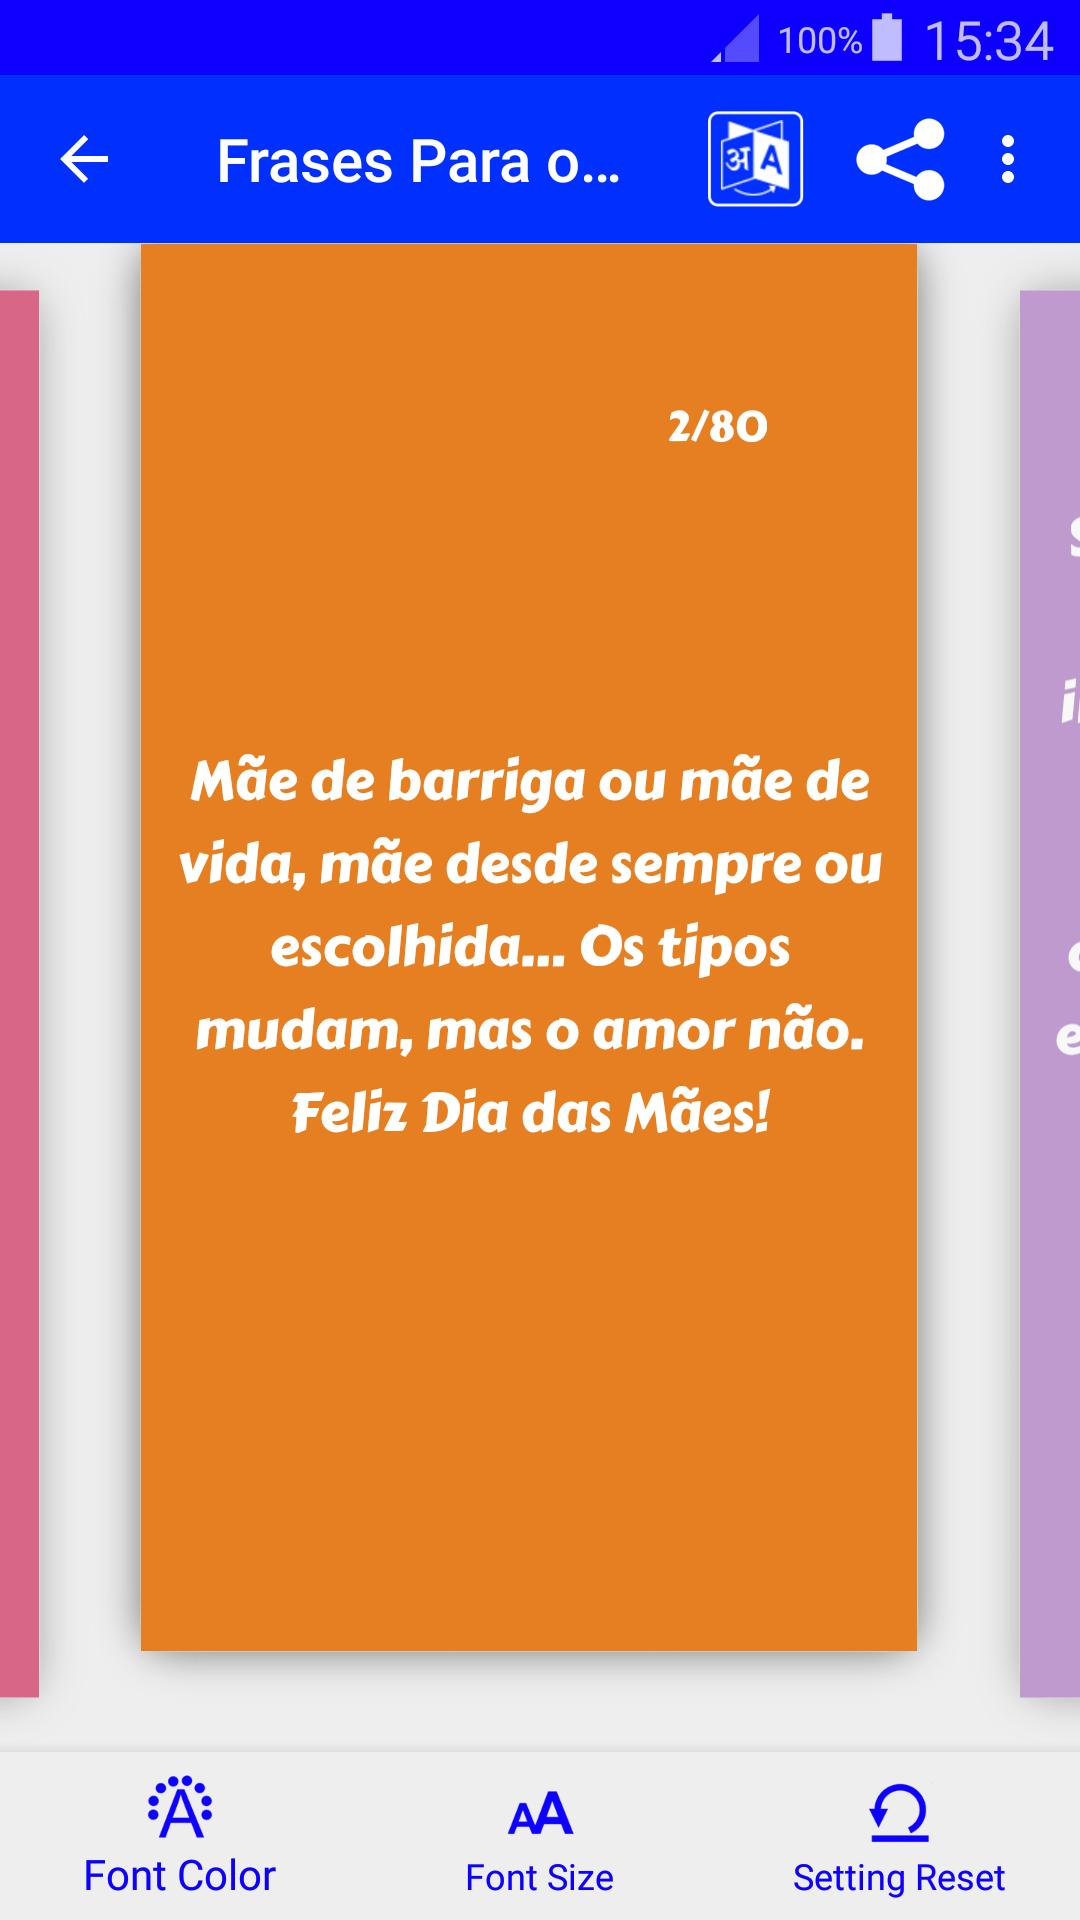 Frases Para O Dia Das Mães For Android Apk Download